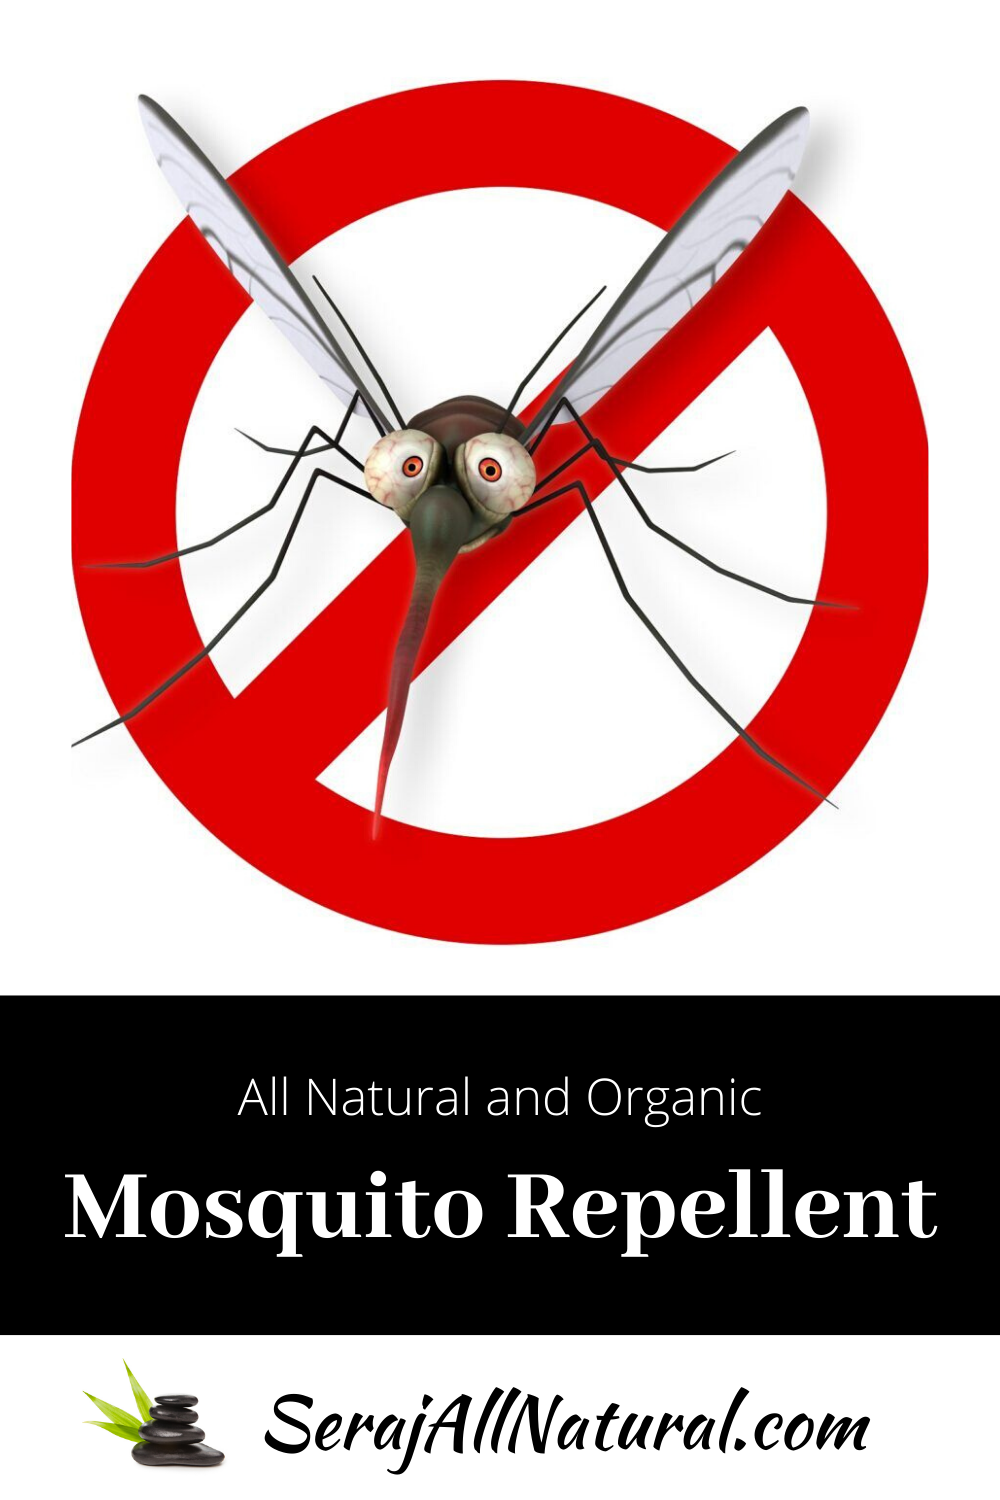 All Natural and Organic Mosquito Repellent Cream from Seraj